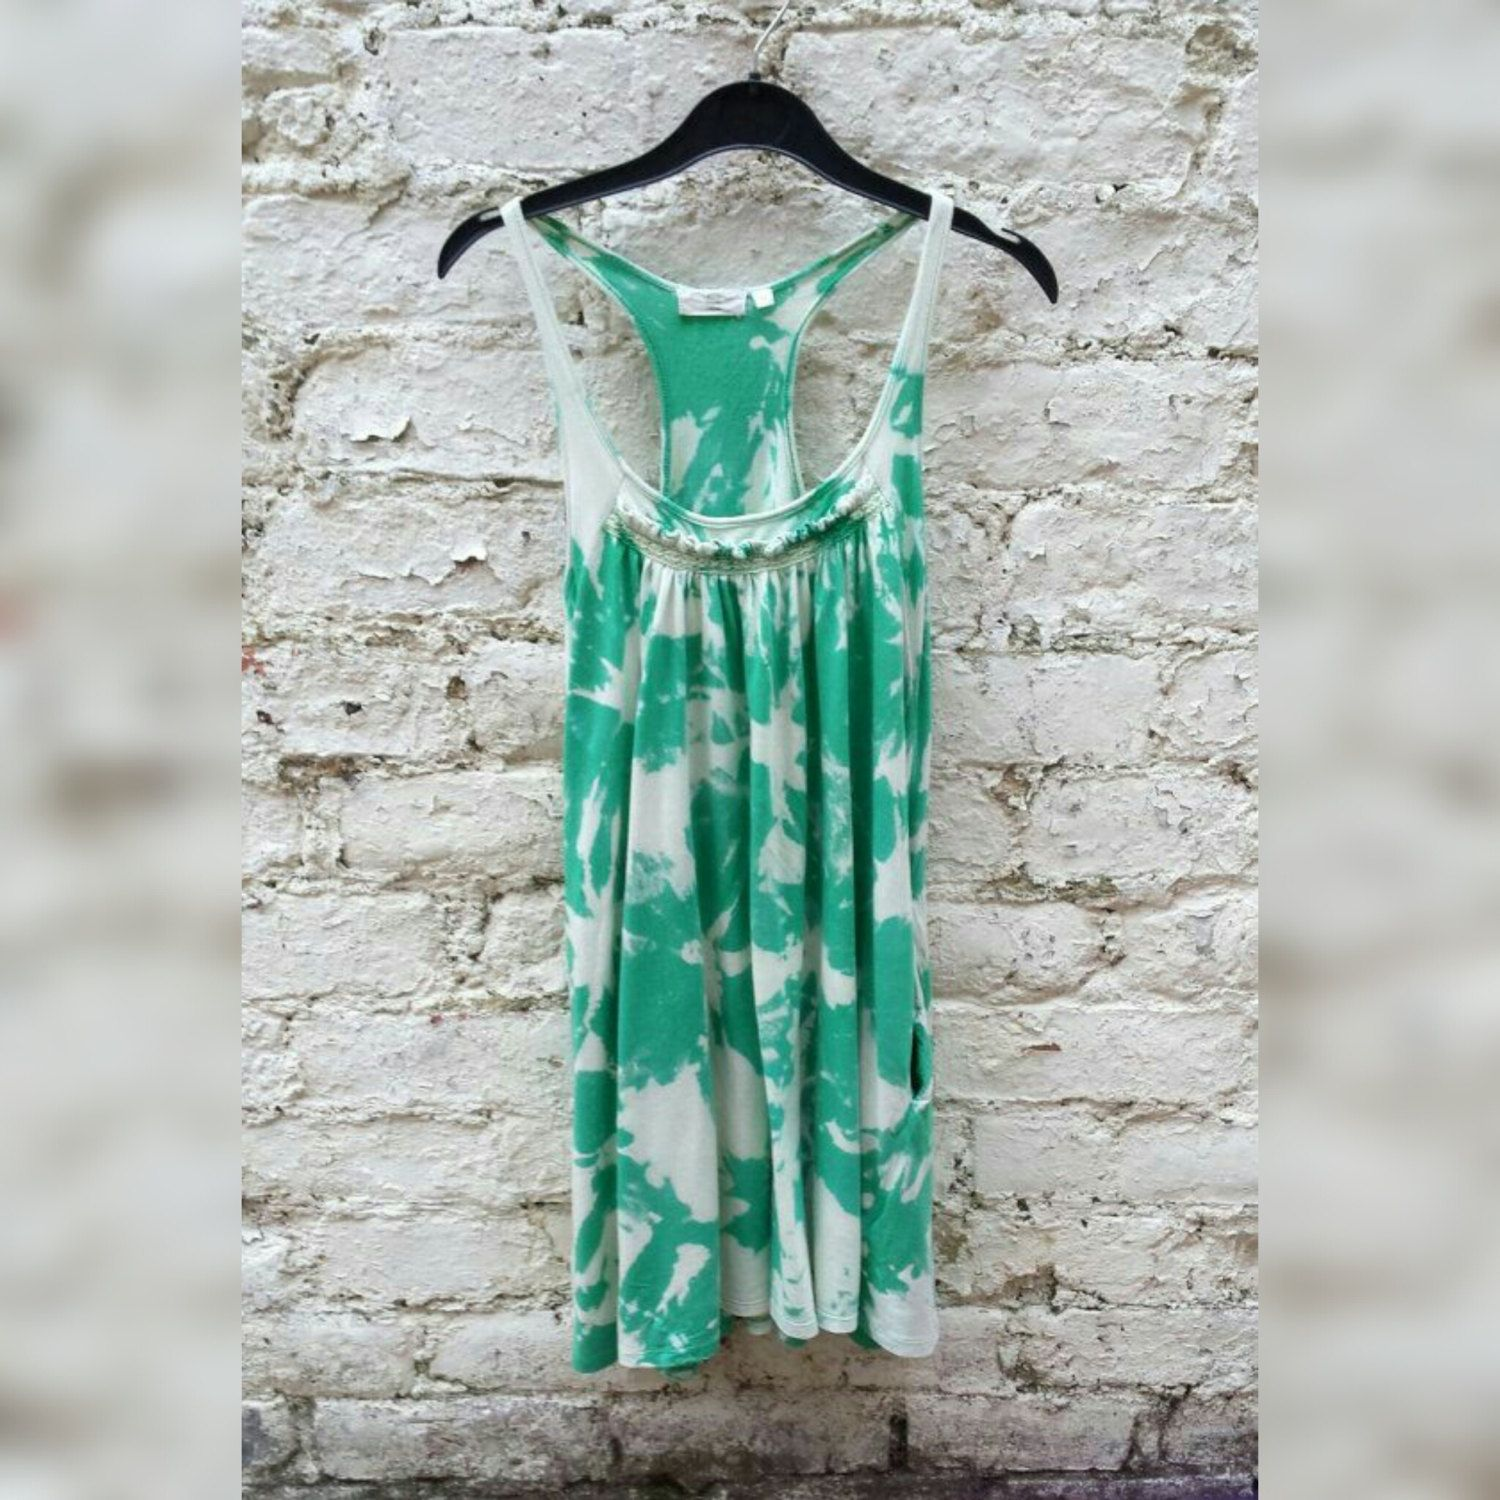 Womens Top Green Tie Dye Womens Vest Top to fit UK size 10 or US size 6 Hippie Boho Christmas Gifts tie dye top womens tie dye boho top hippie top gifting ideas trending items womens tops christmas tops christmas gifts gifts for her winter finds fashion trends green 19.50 GBP #goriani